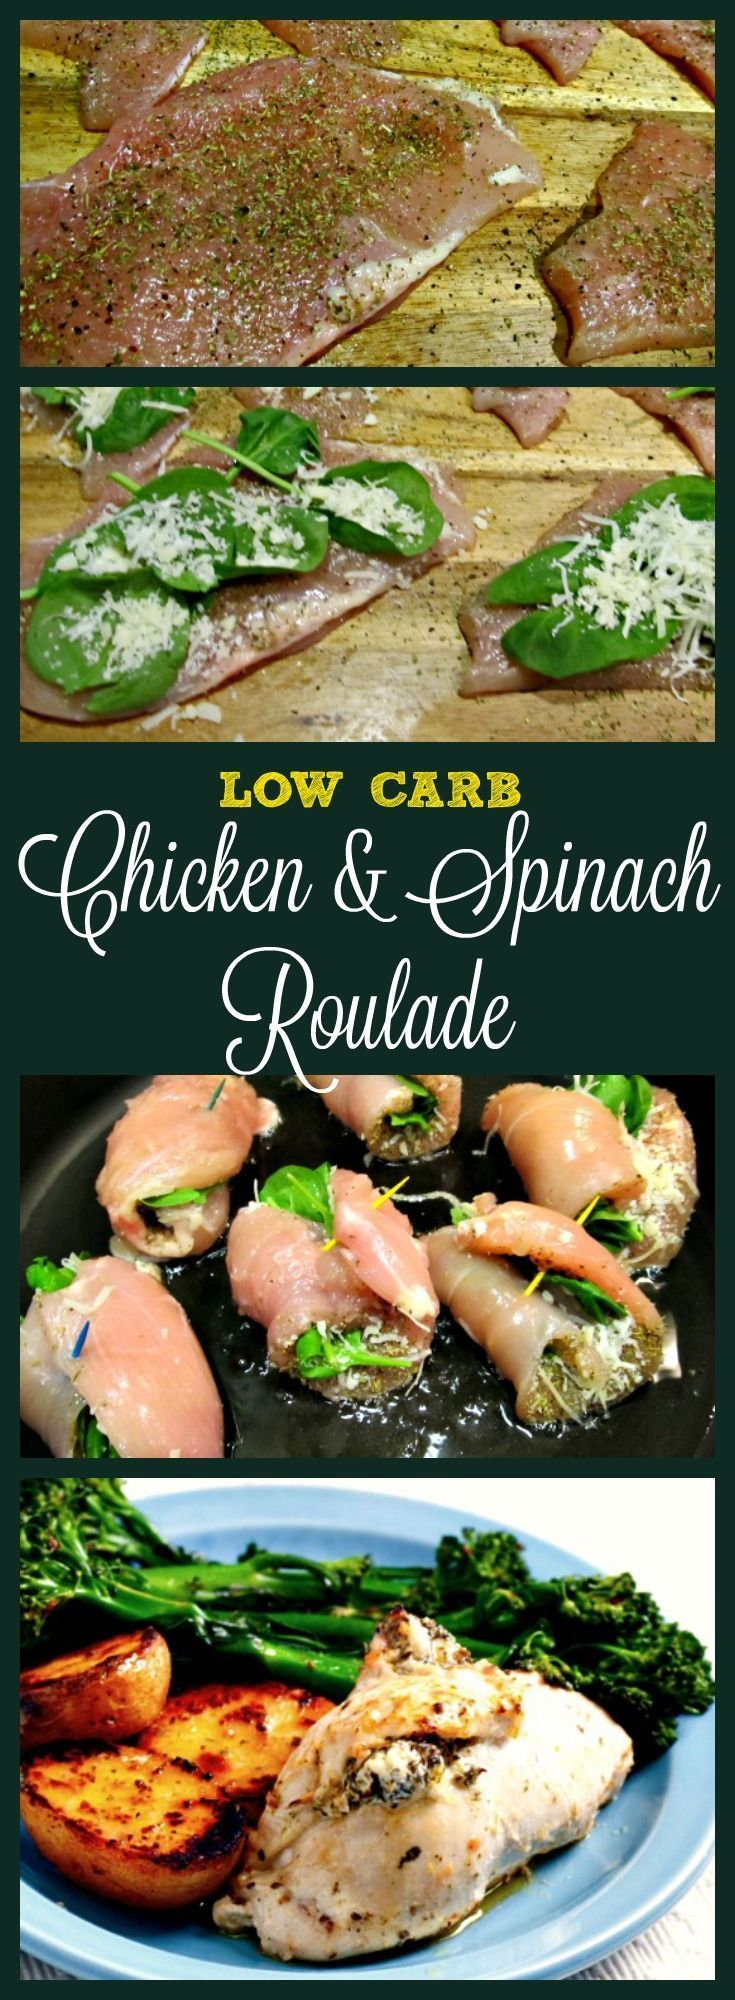 A low-carb meal the whole family can enjoy. Plus, tips to make this as part of…